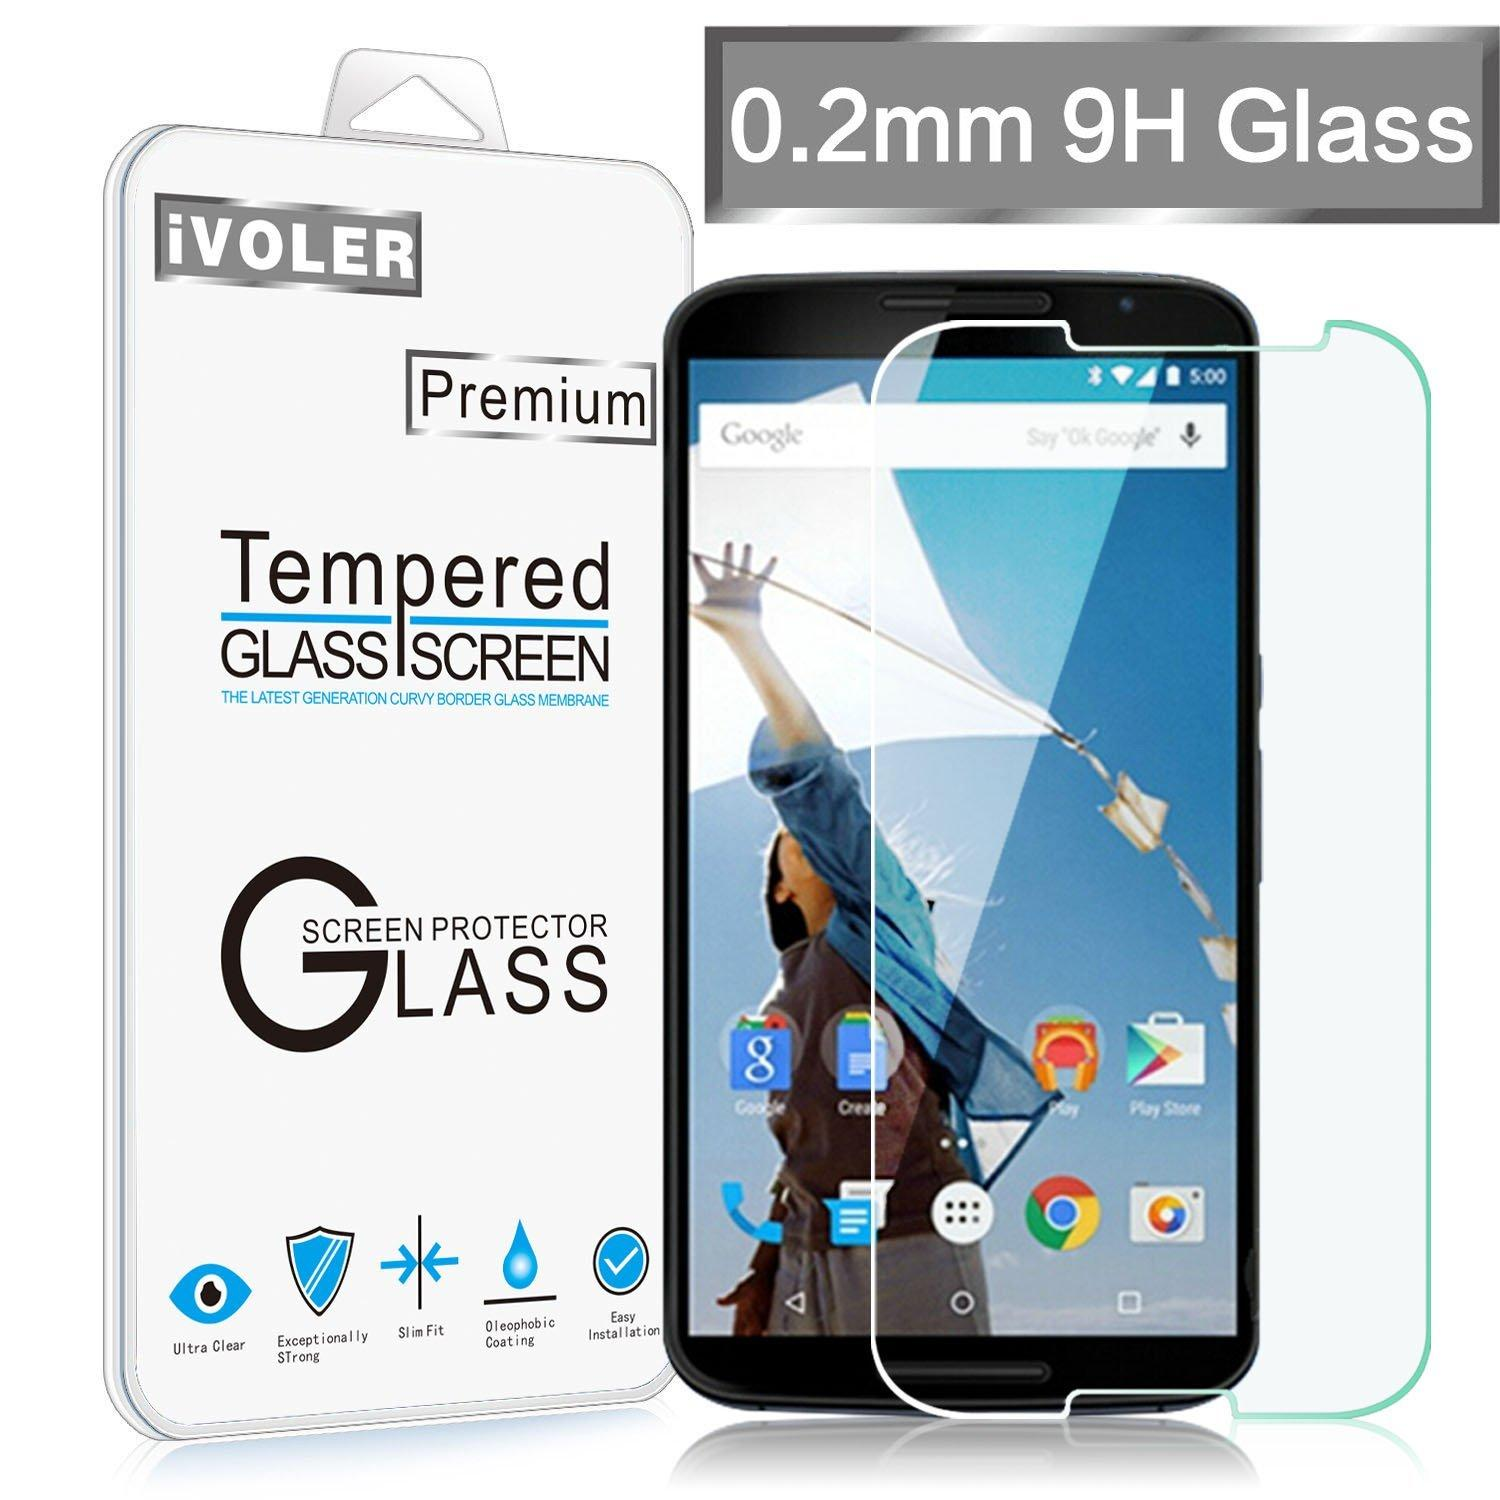 $0.05 iVoler Tempered Glass Screen Protector for Google Motorola Nexus 6